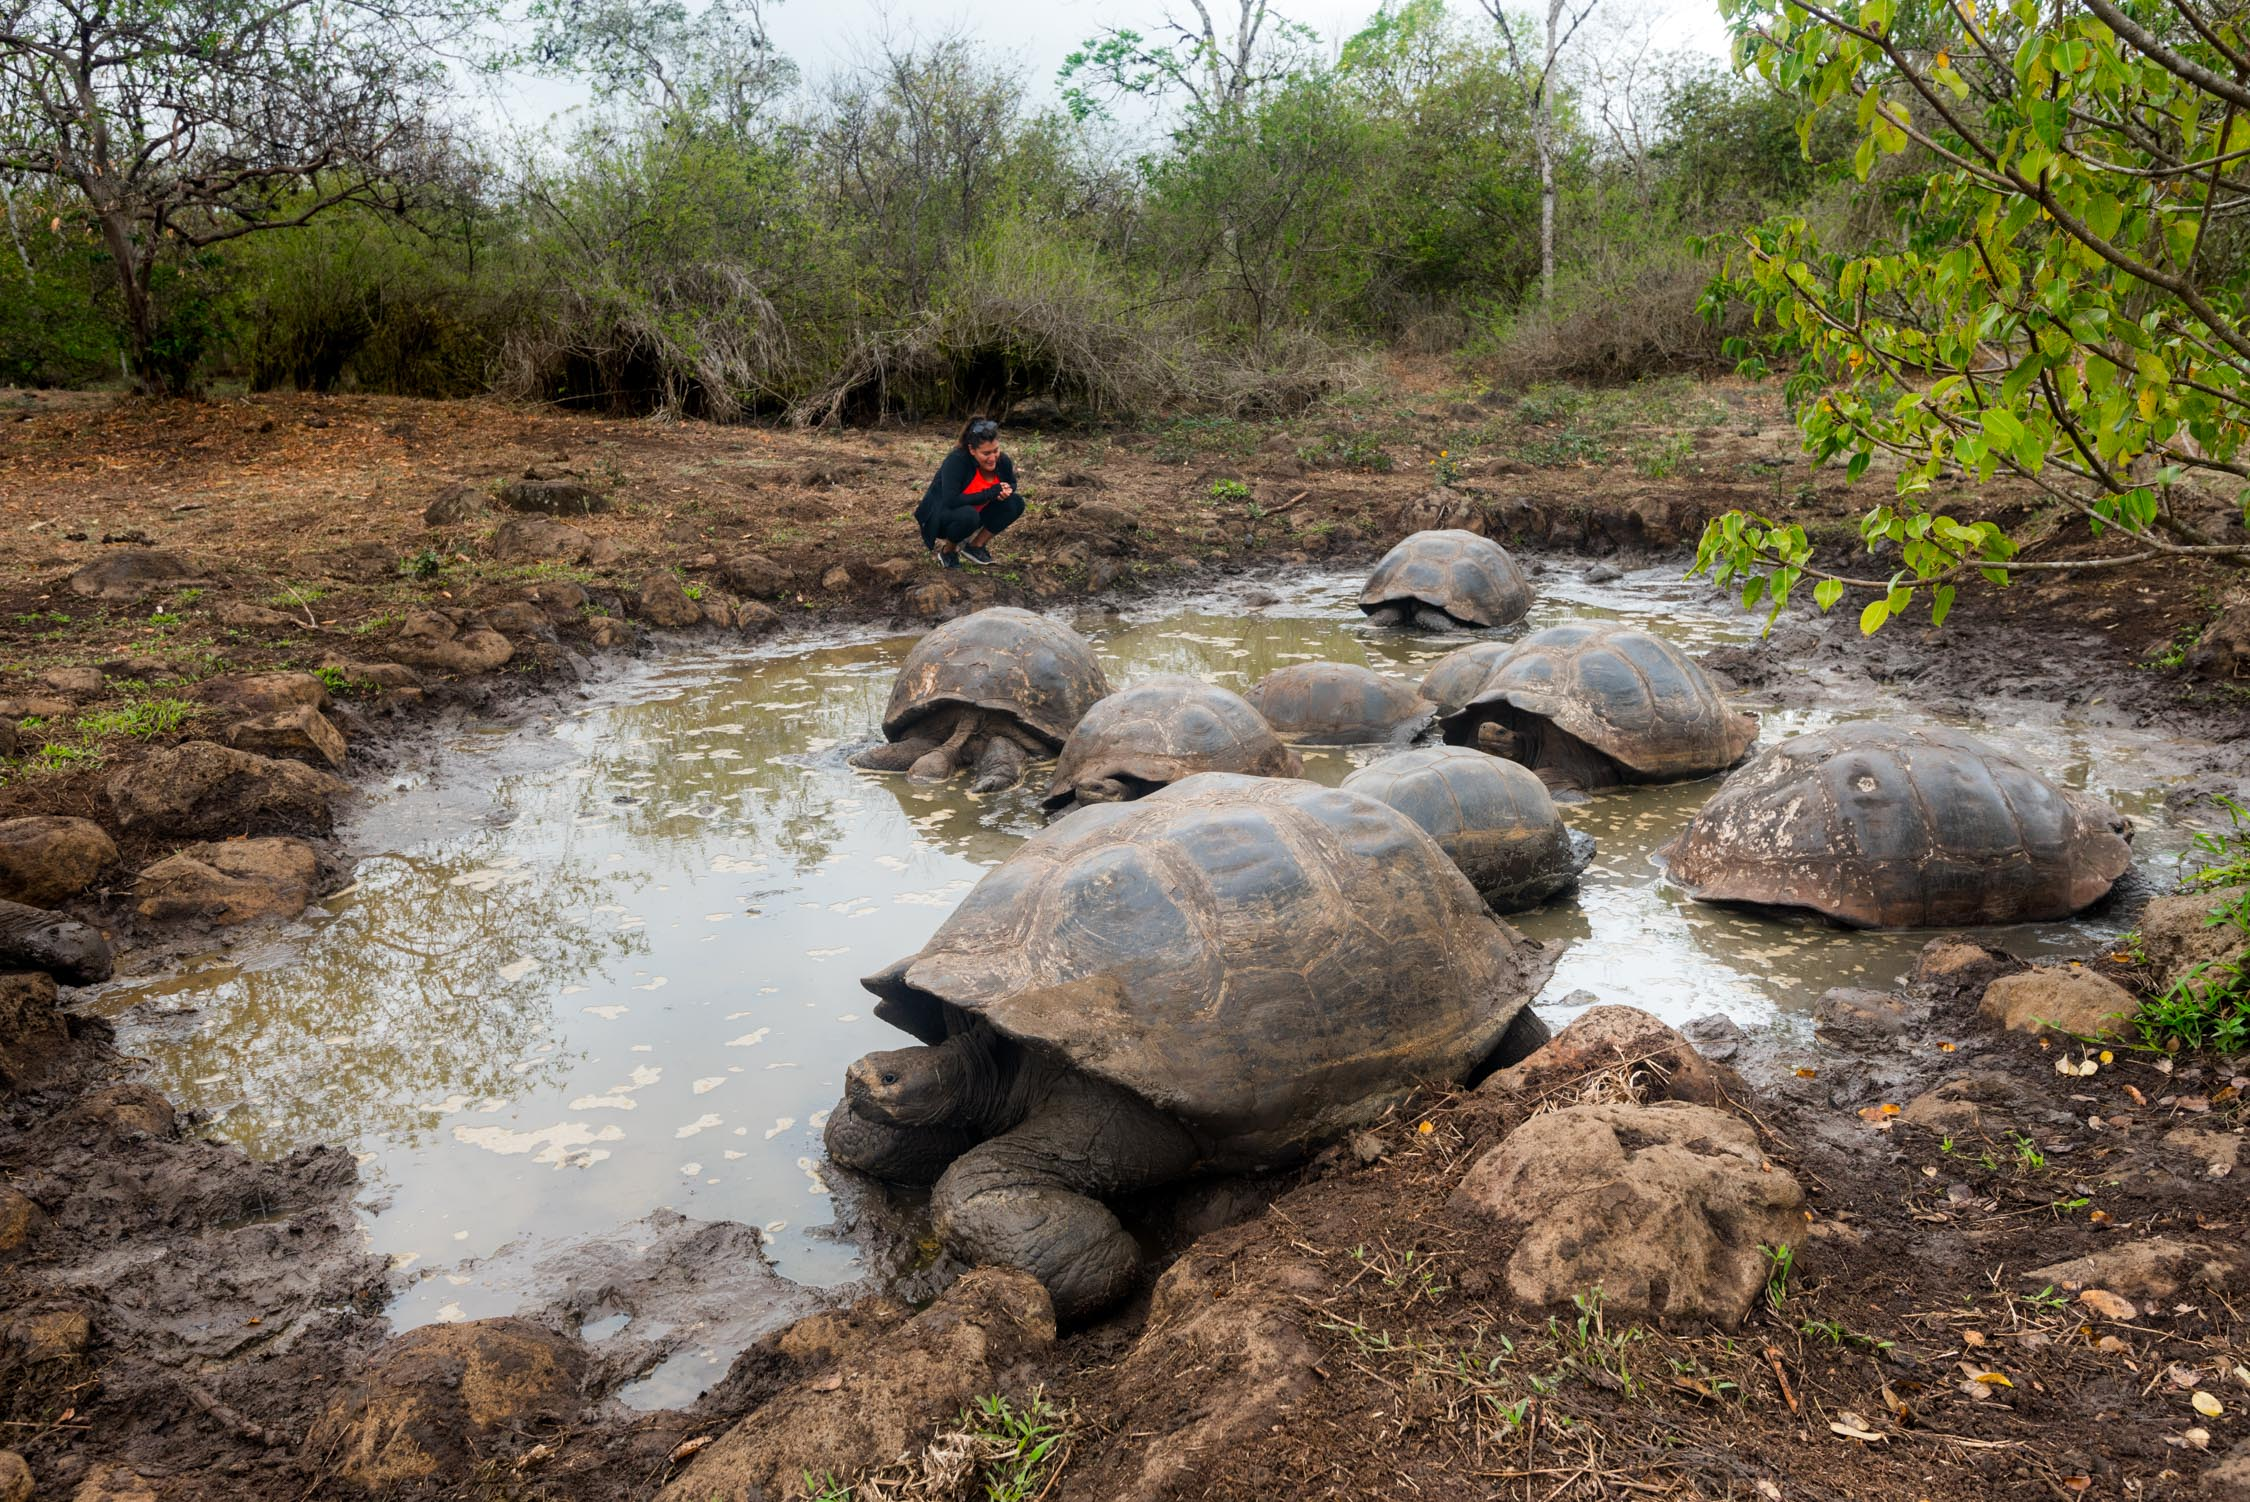 If you were really quiet, you can hear the Giant tortises make faint sounds almost like a sneeze